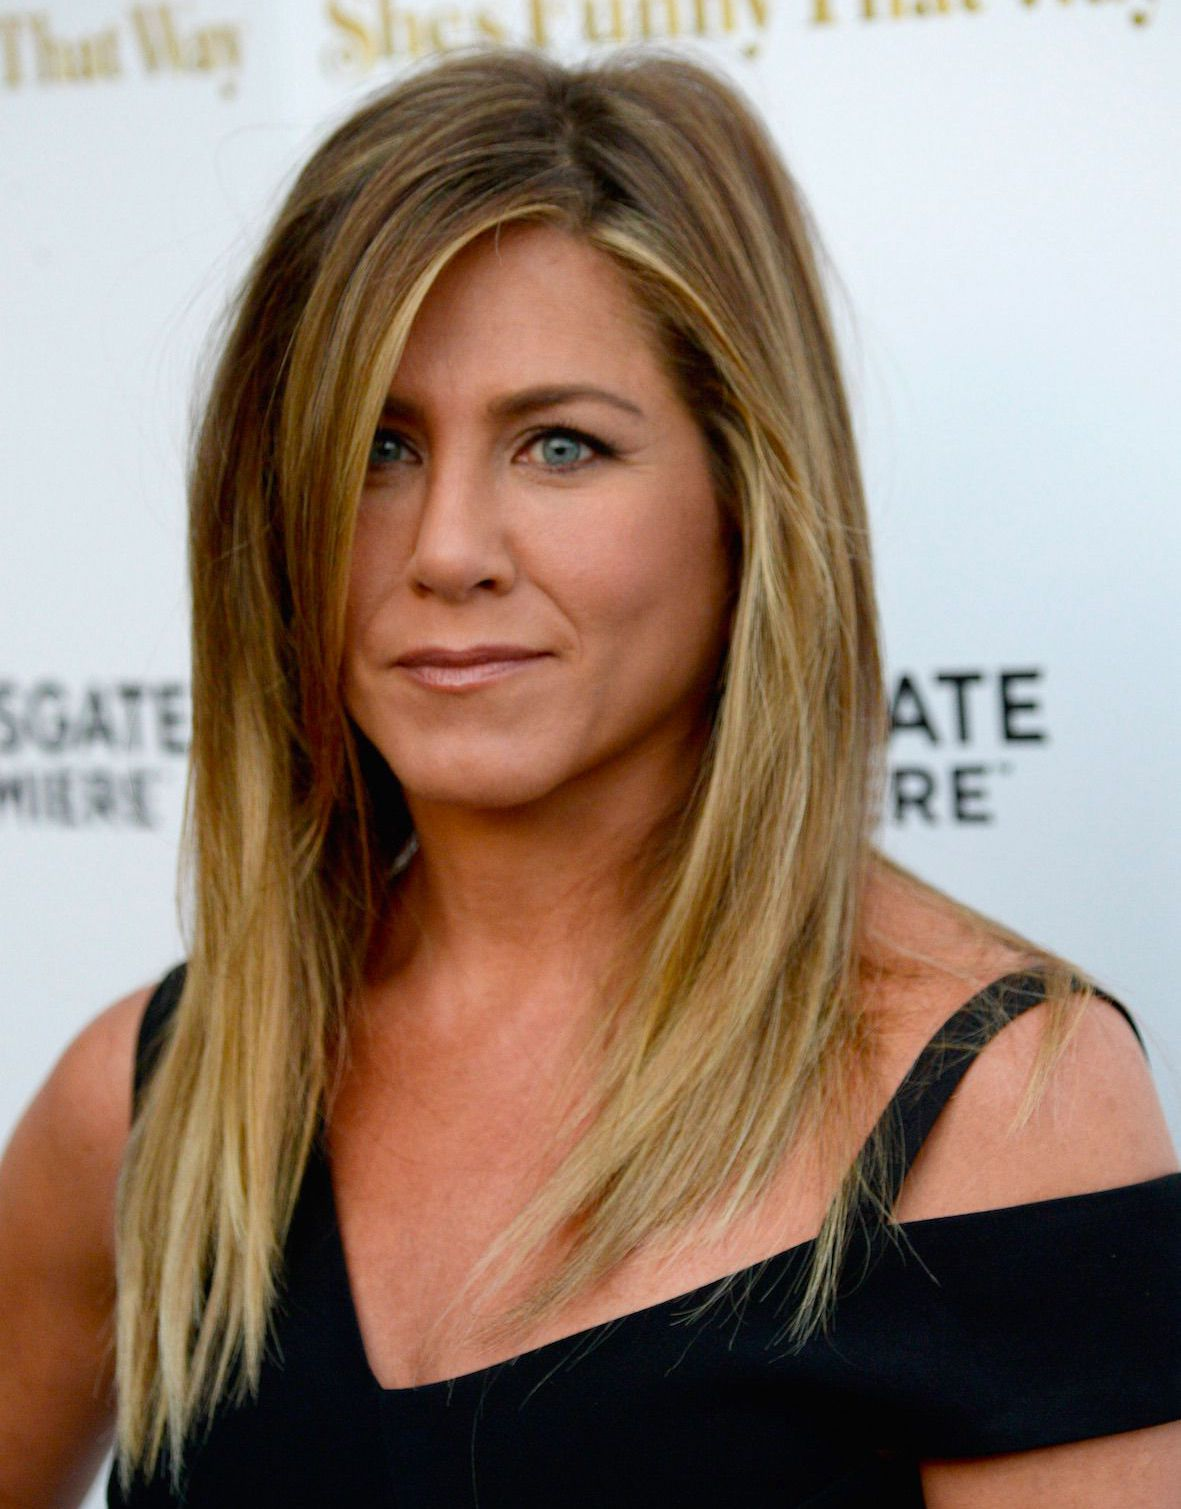 Jennifer Aniston on August 19, 2015 in Los Angeles, California